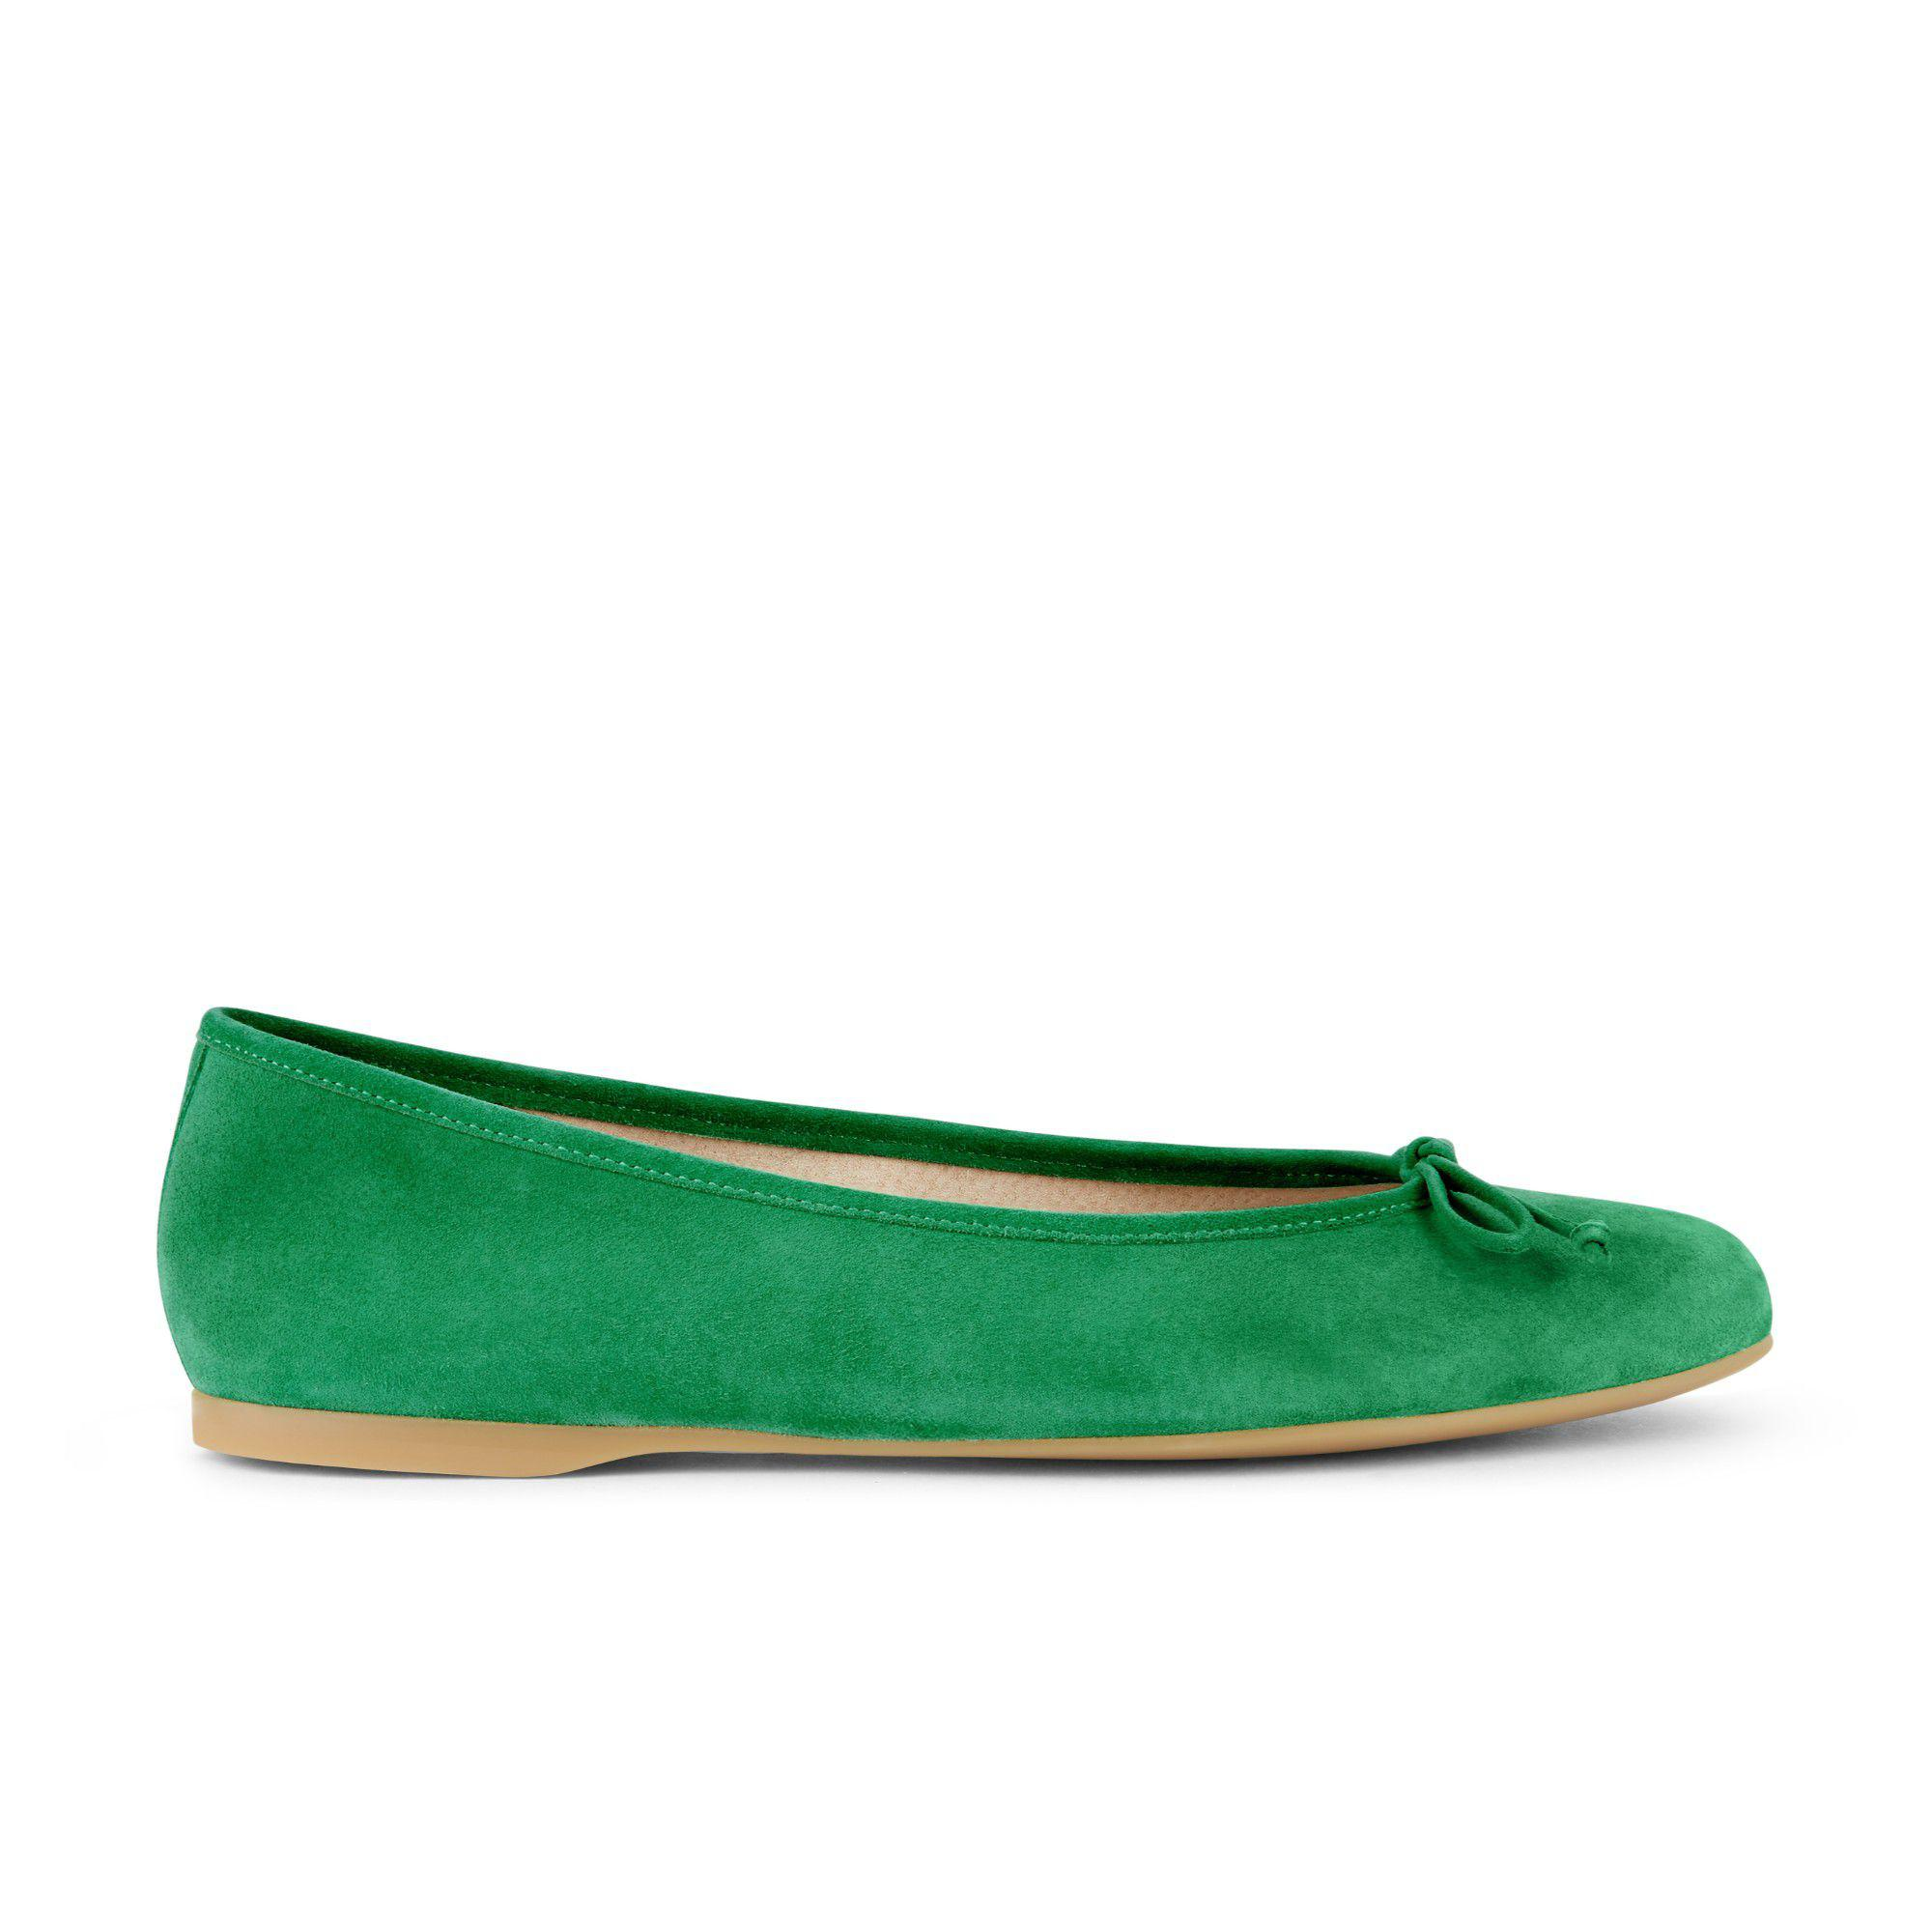 bde887fdfe9 Hobbs Bright Green  prior  Ballerina Shoes in Green - Lyst